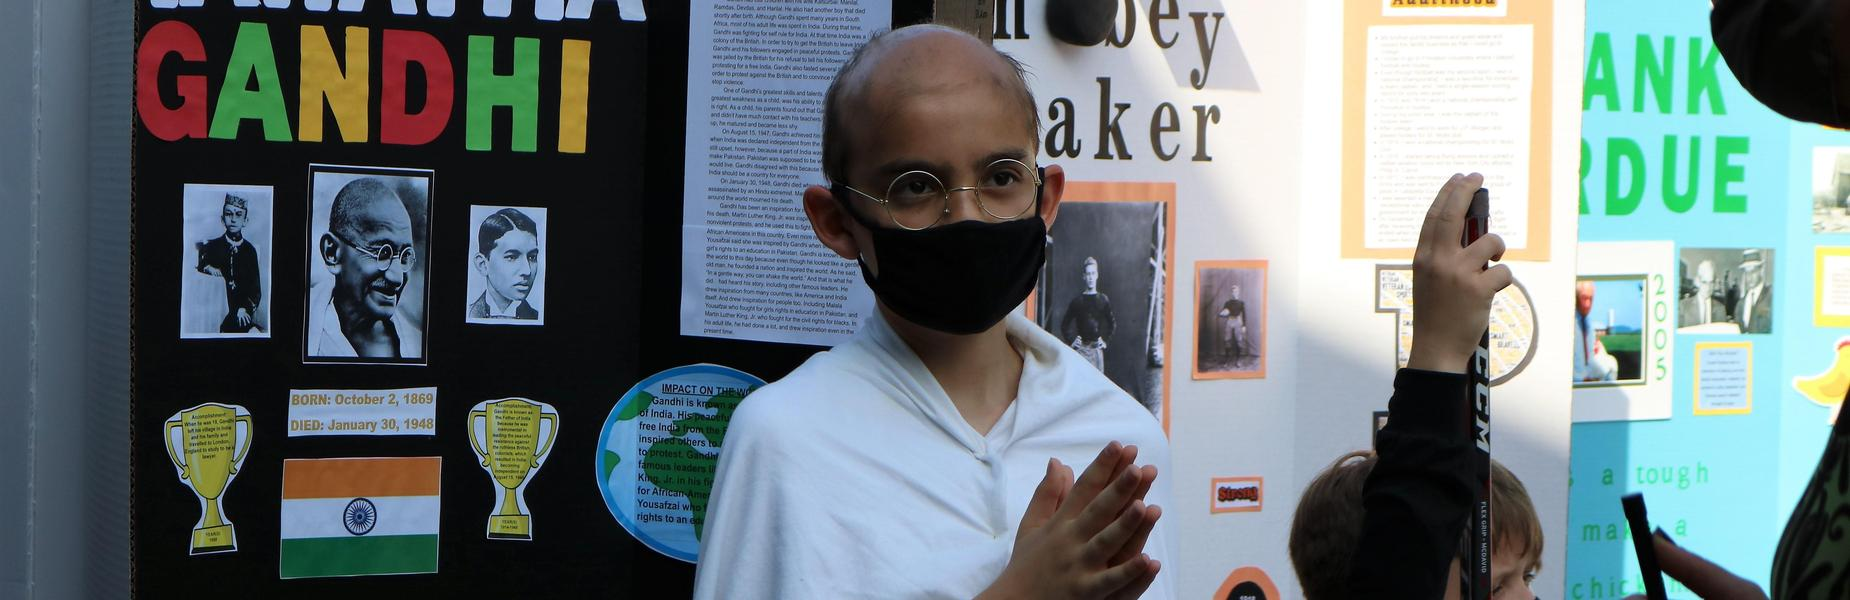 Photo of Wilson 5th grader dressed as Gandhi during Grade 5 Wax Museum.